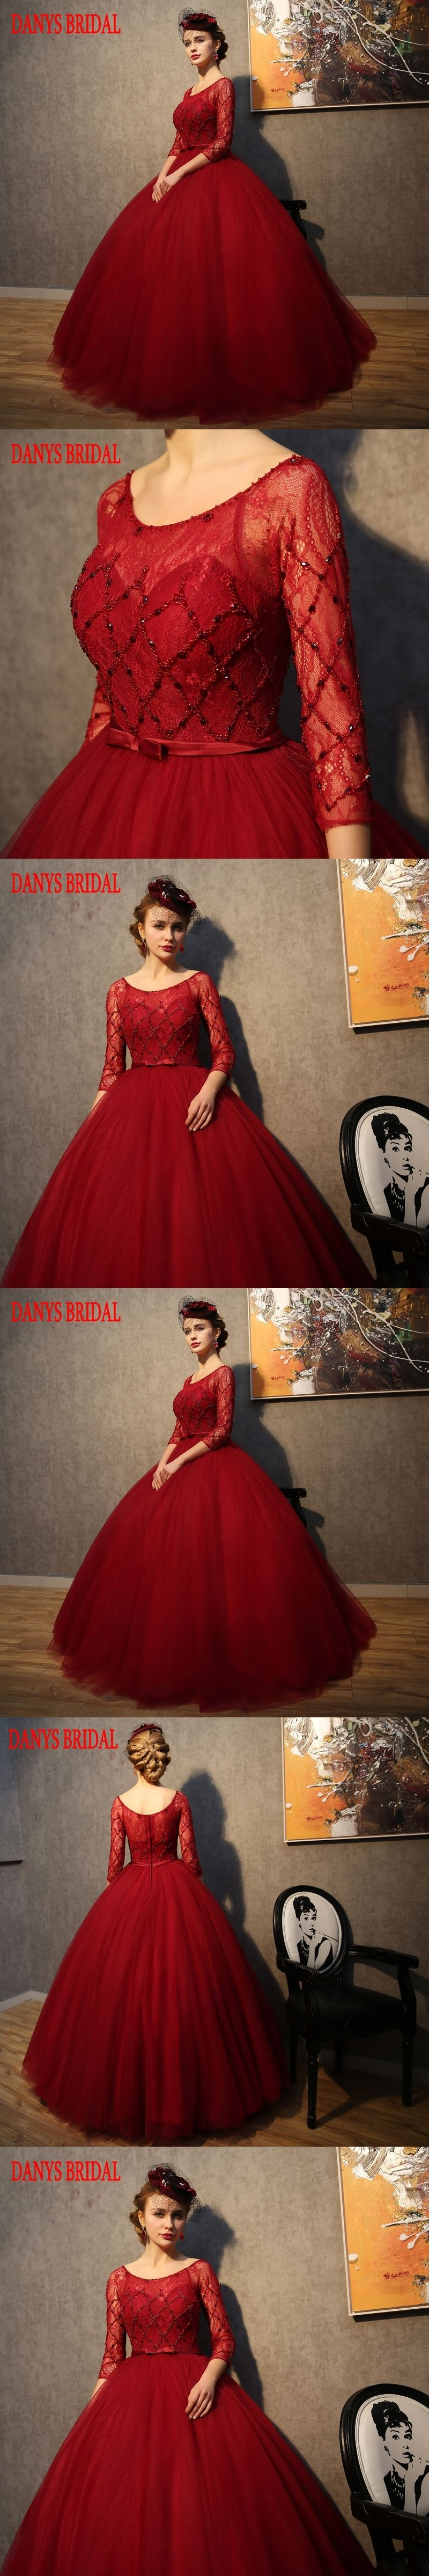 Red long sleeve wedding dress lace tulle ball gown weding china